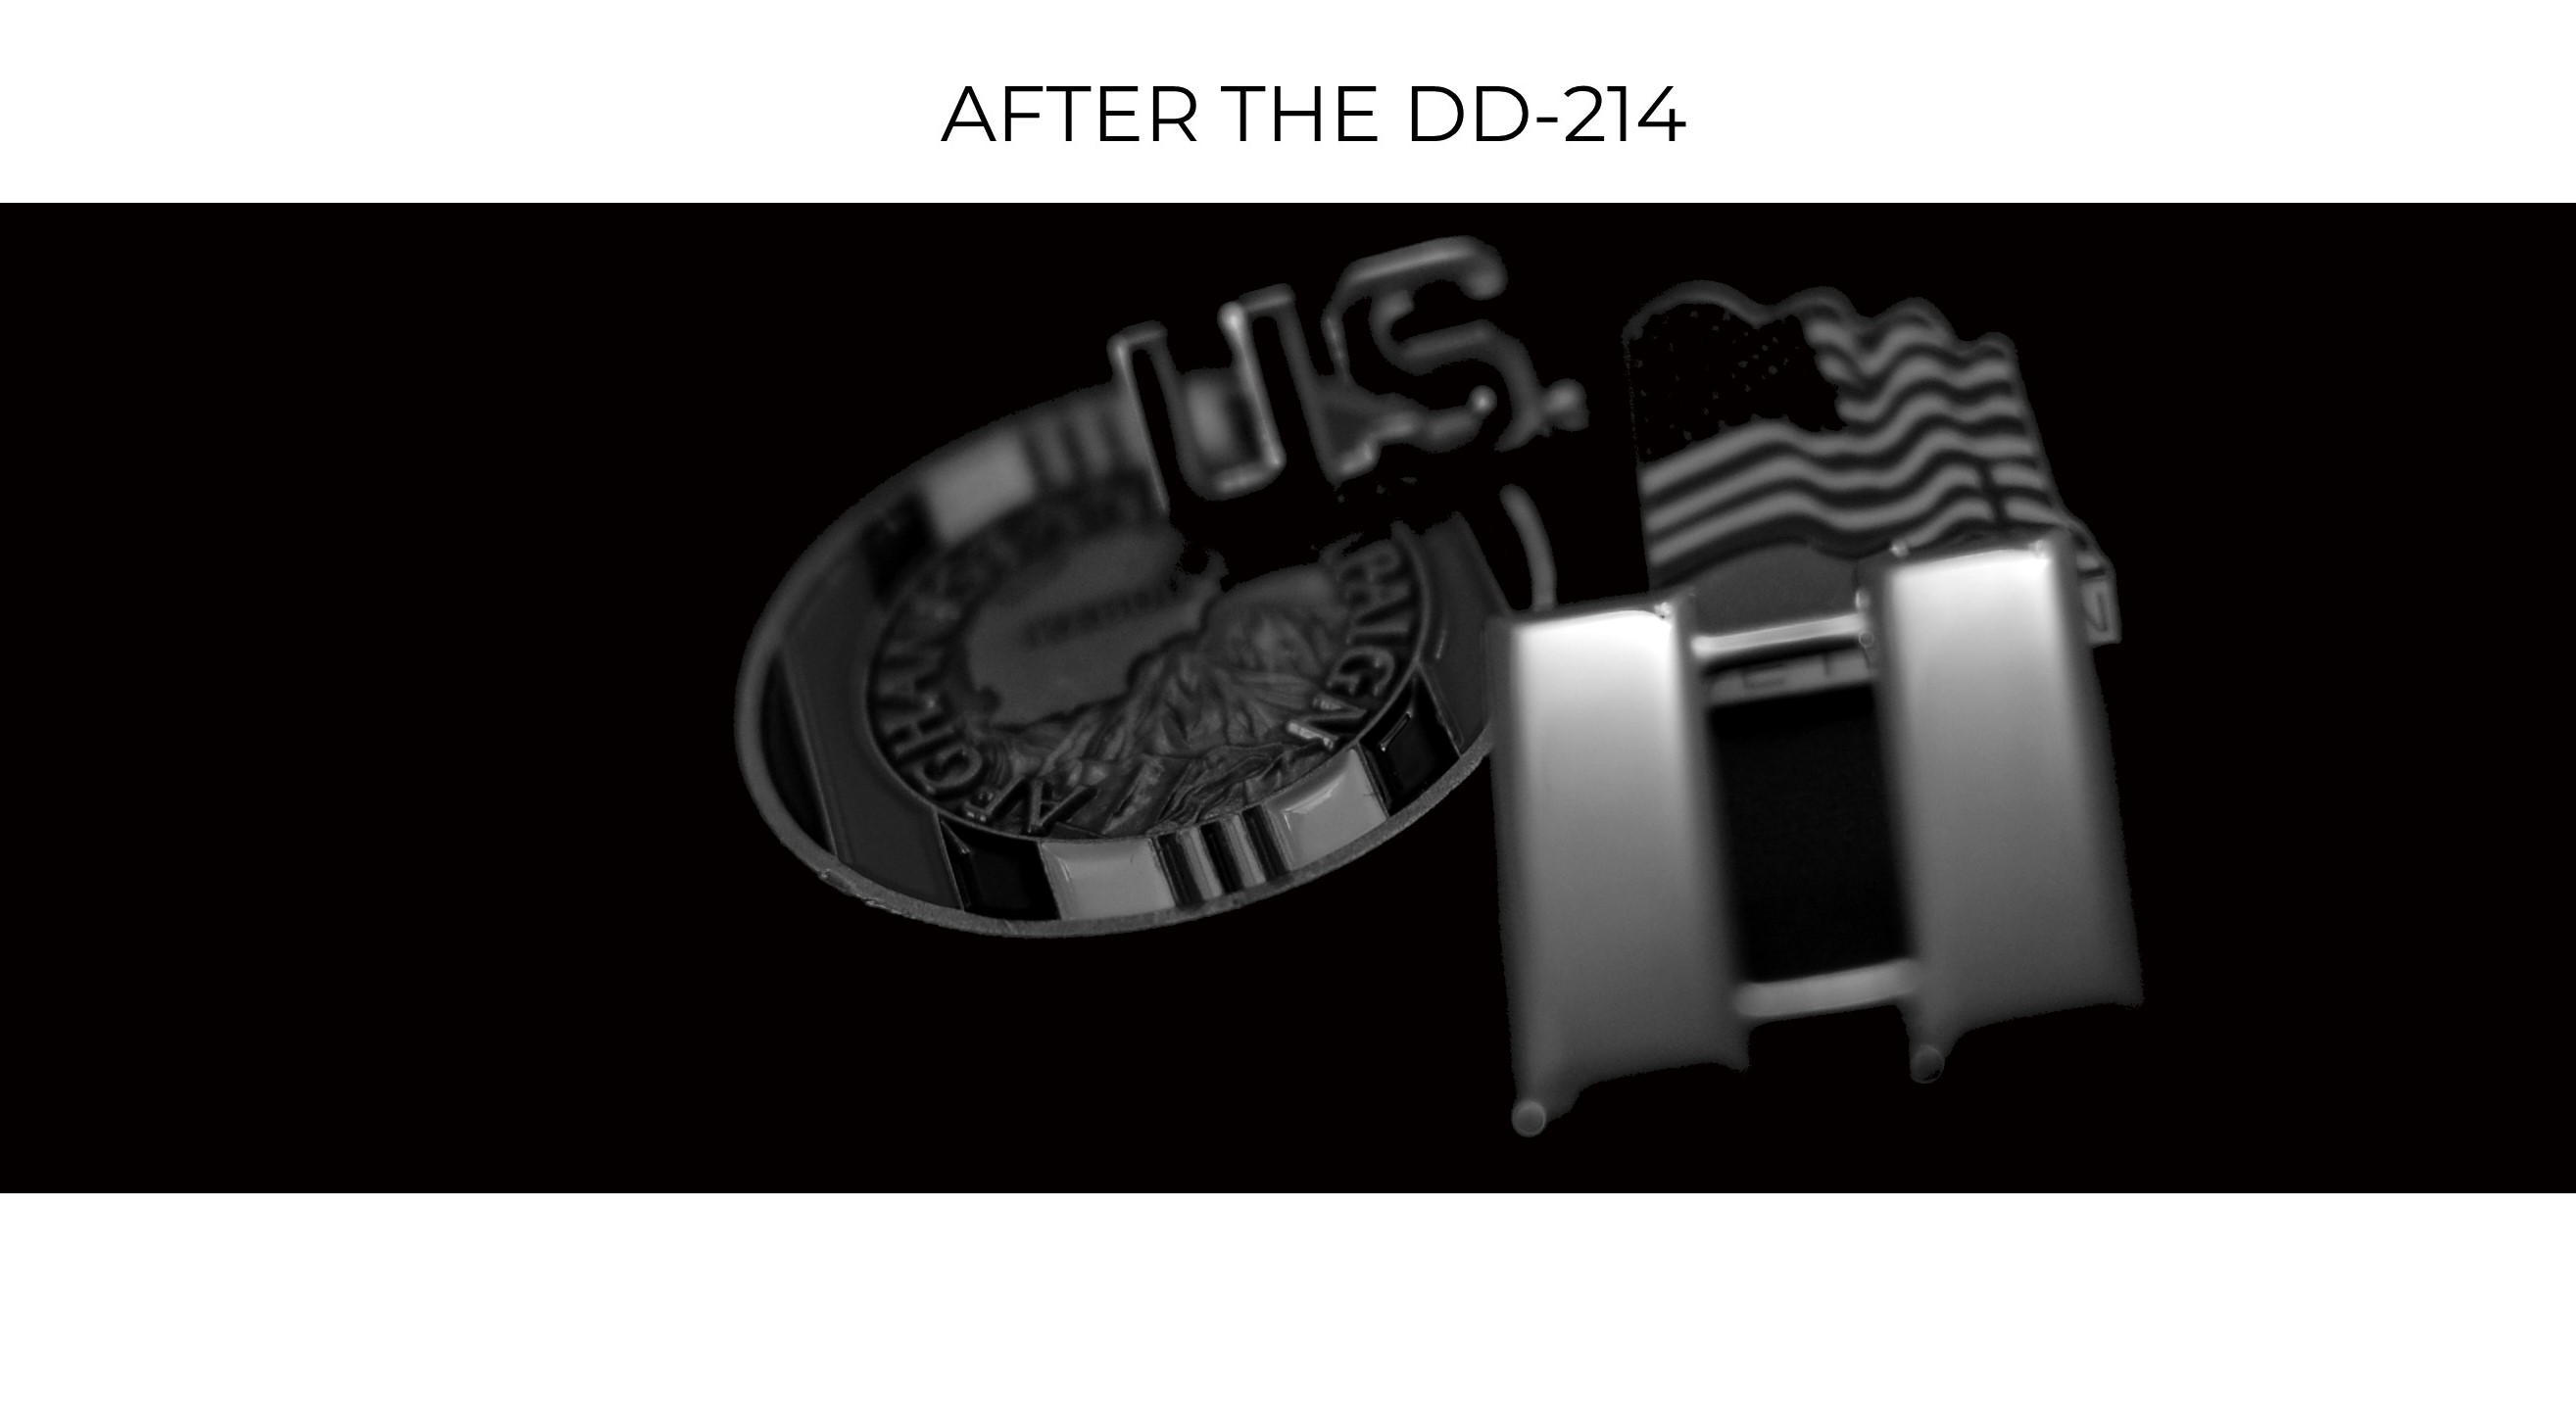 After the DD-214